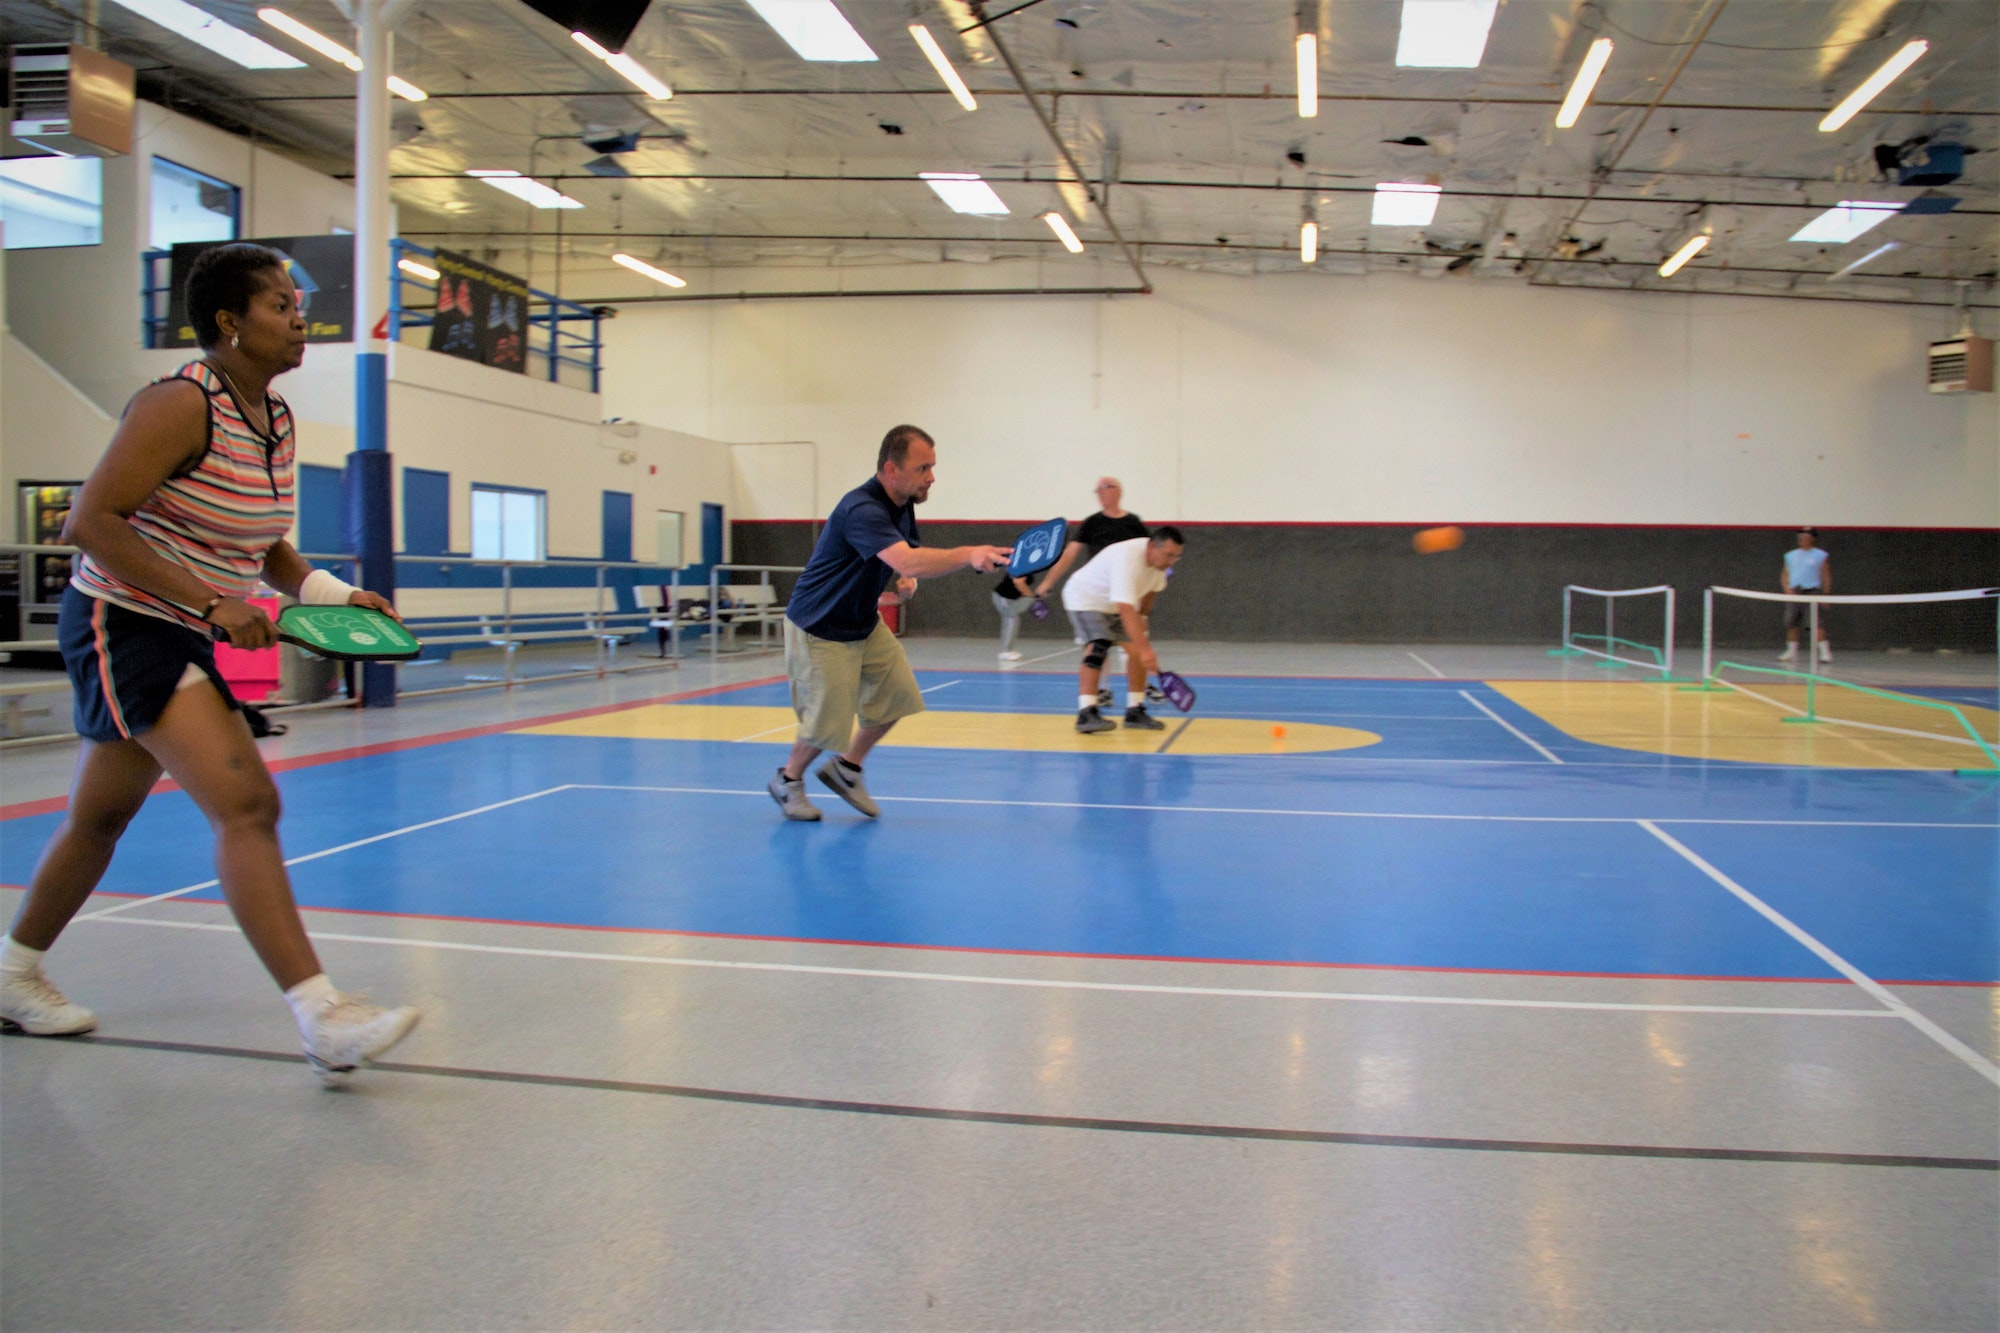 Adults playing pickleball at Power Play Center